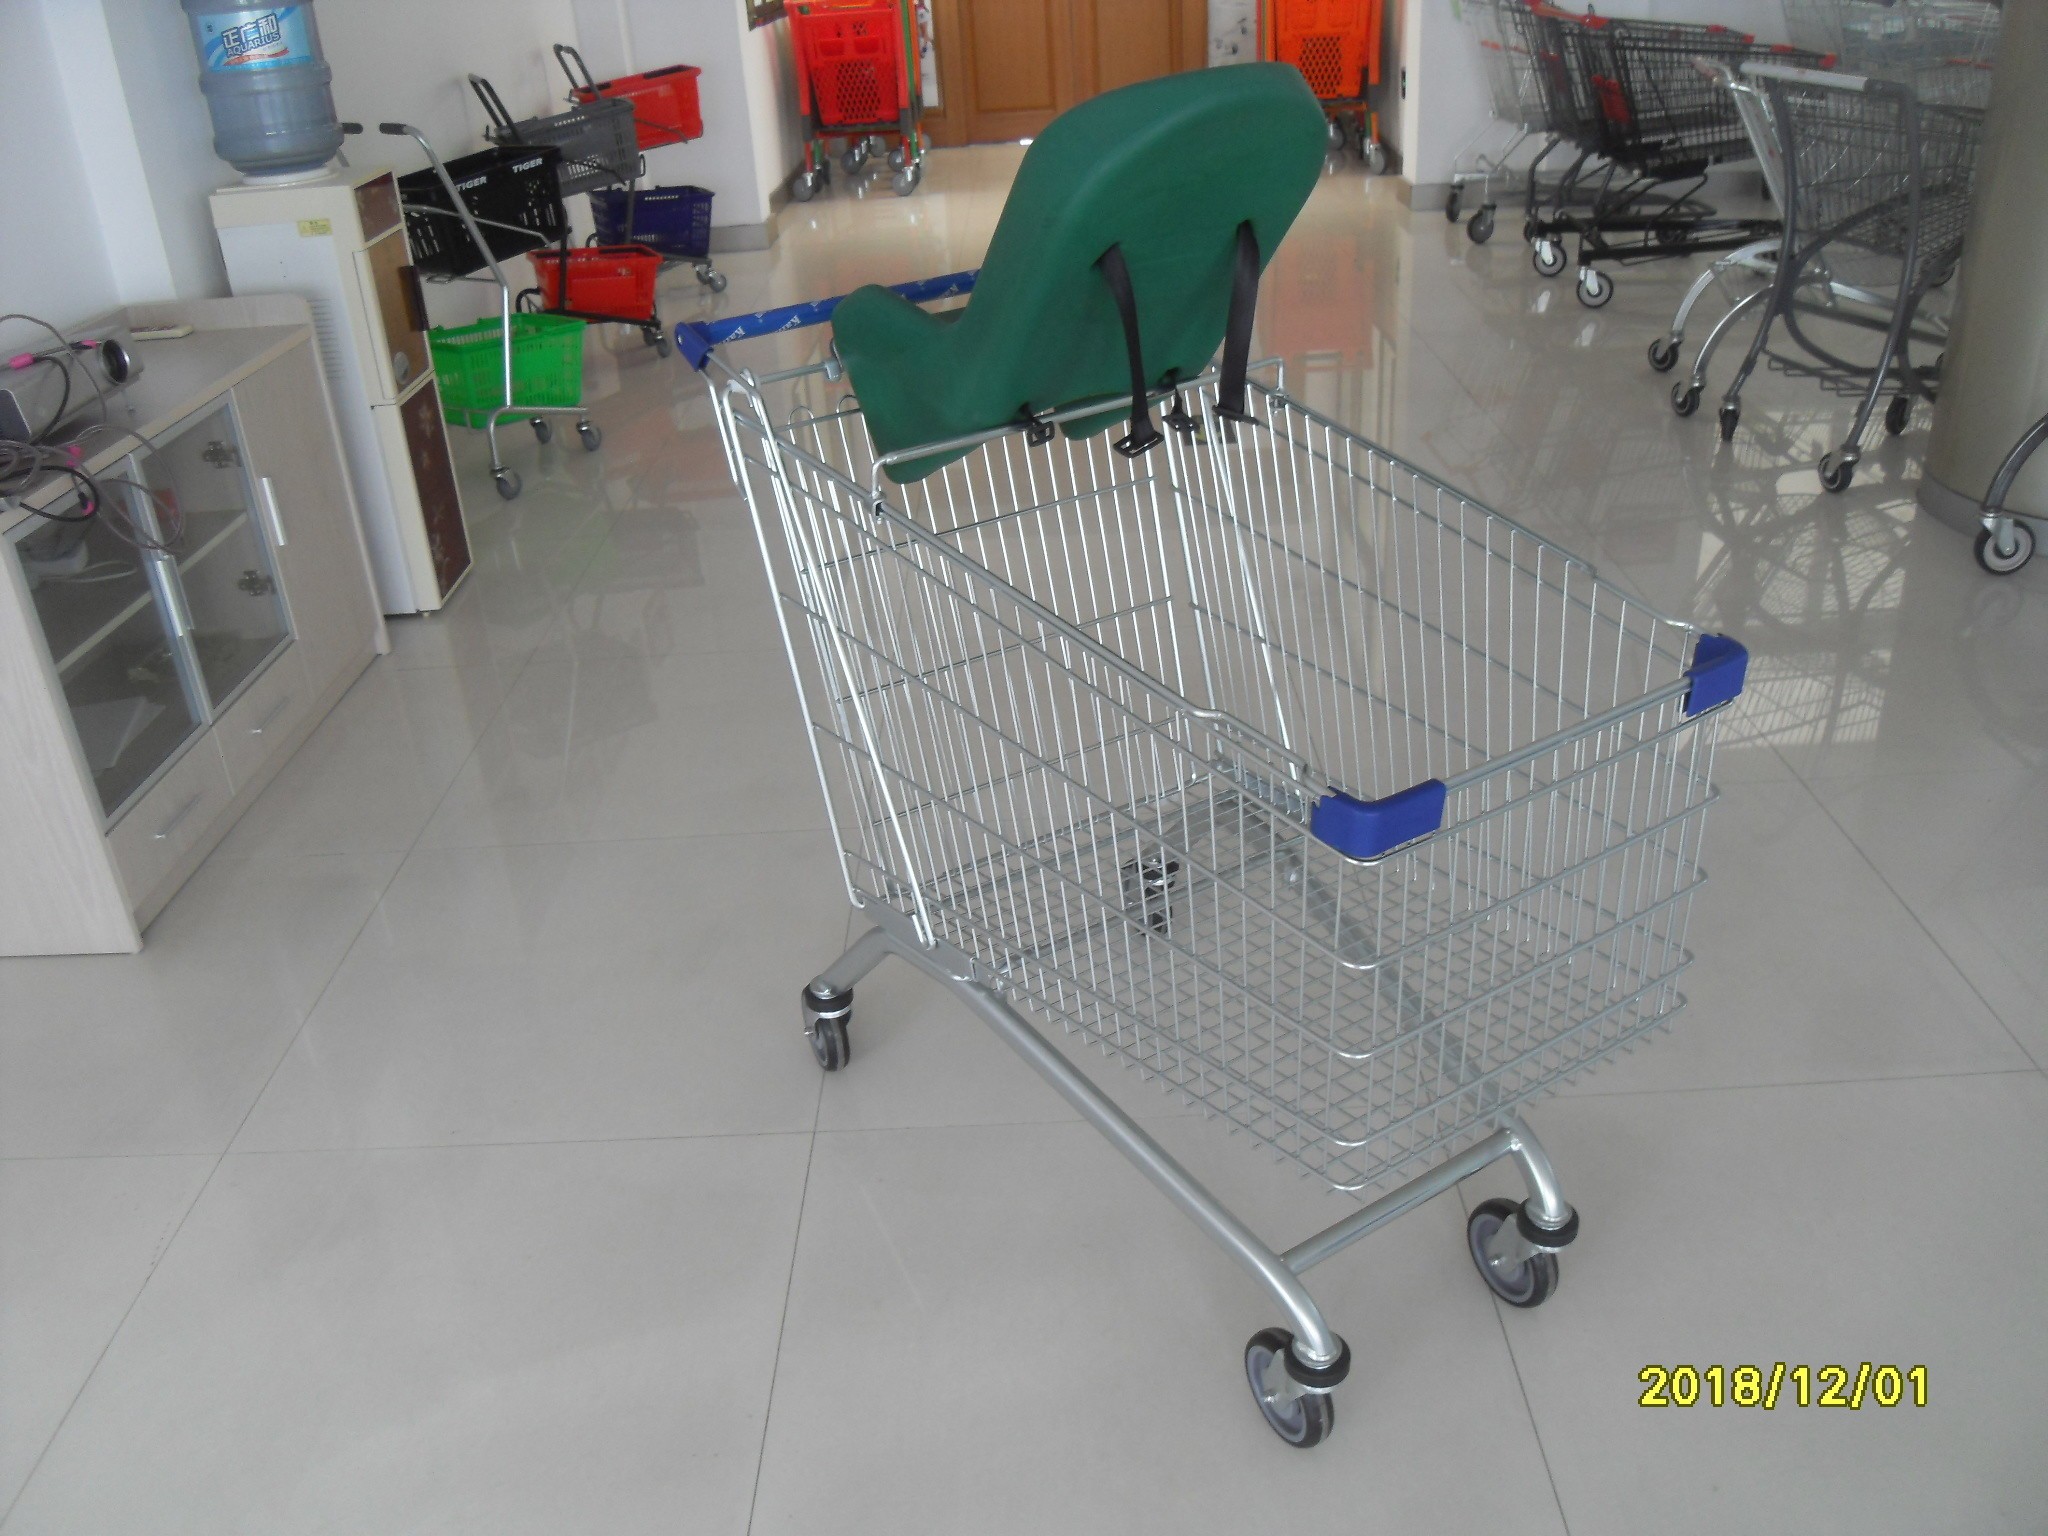 210L Baby Capsule Anti Theft Wire Grocery Pull Carts With Zinc Plating